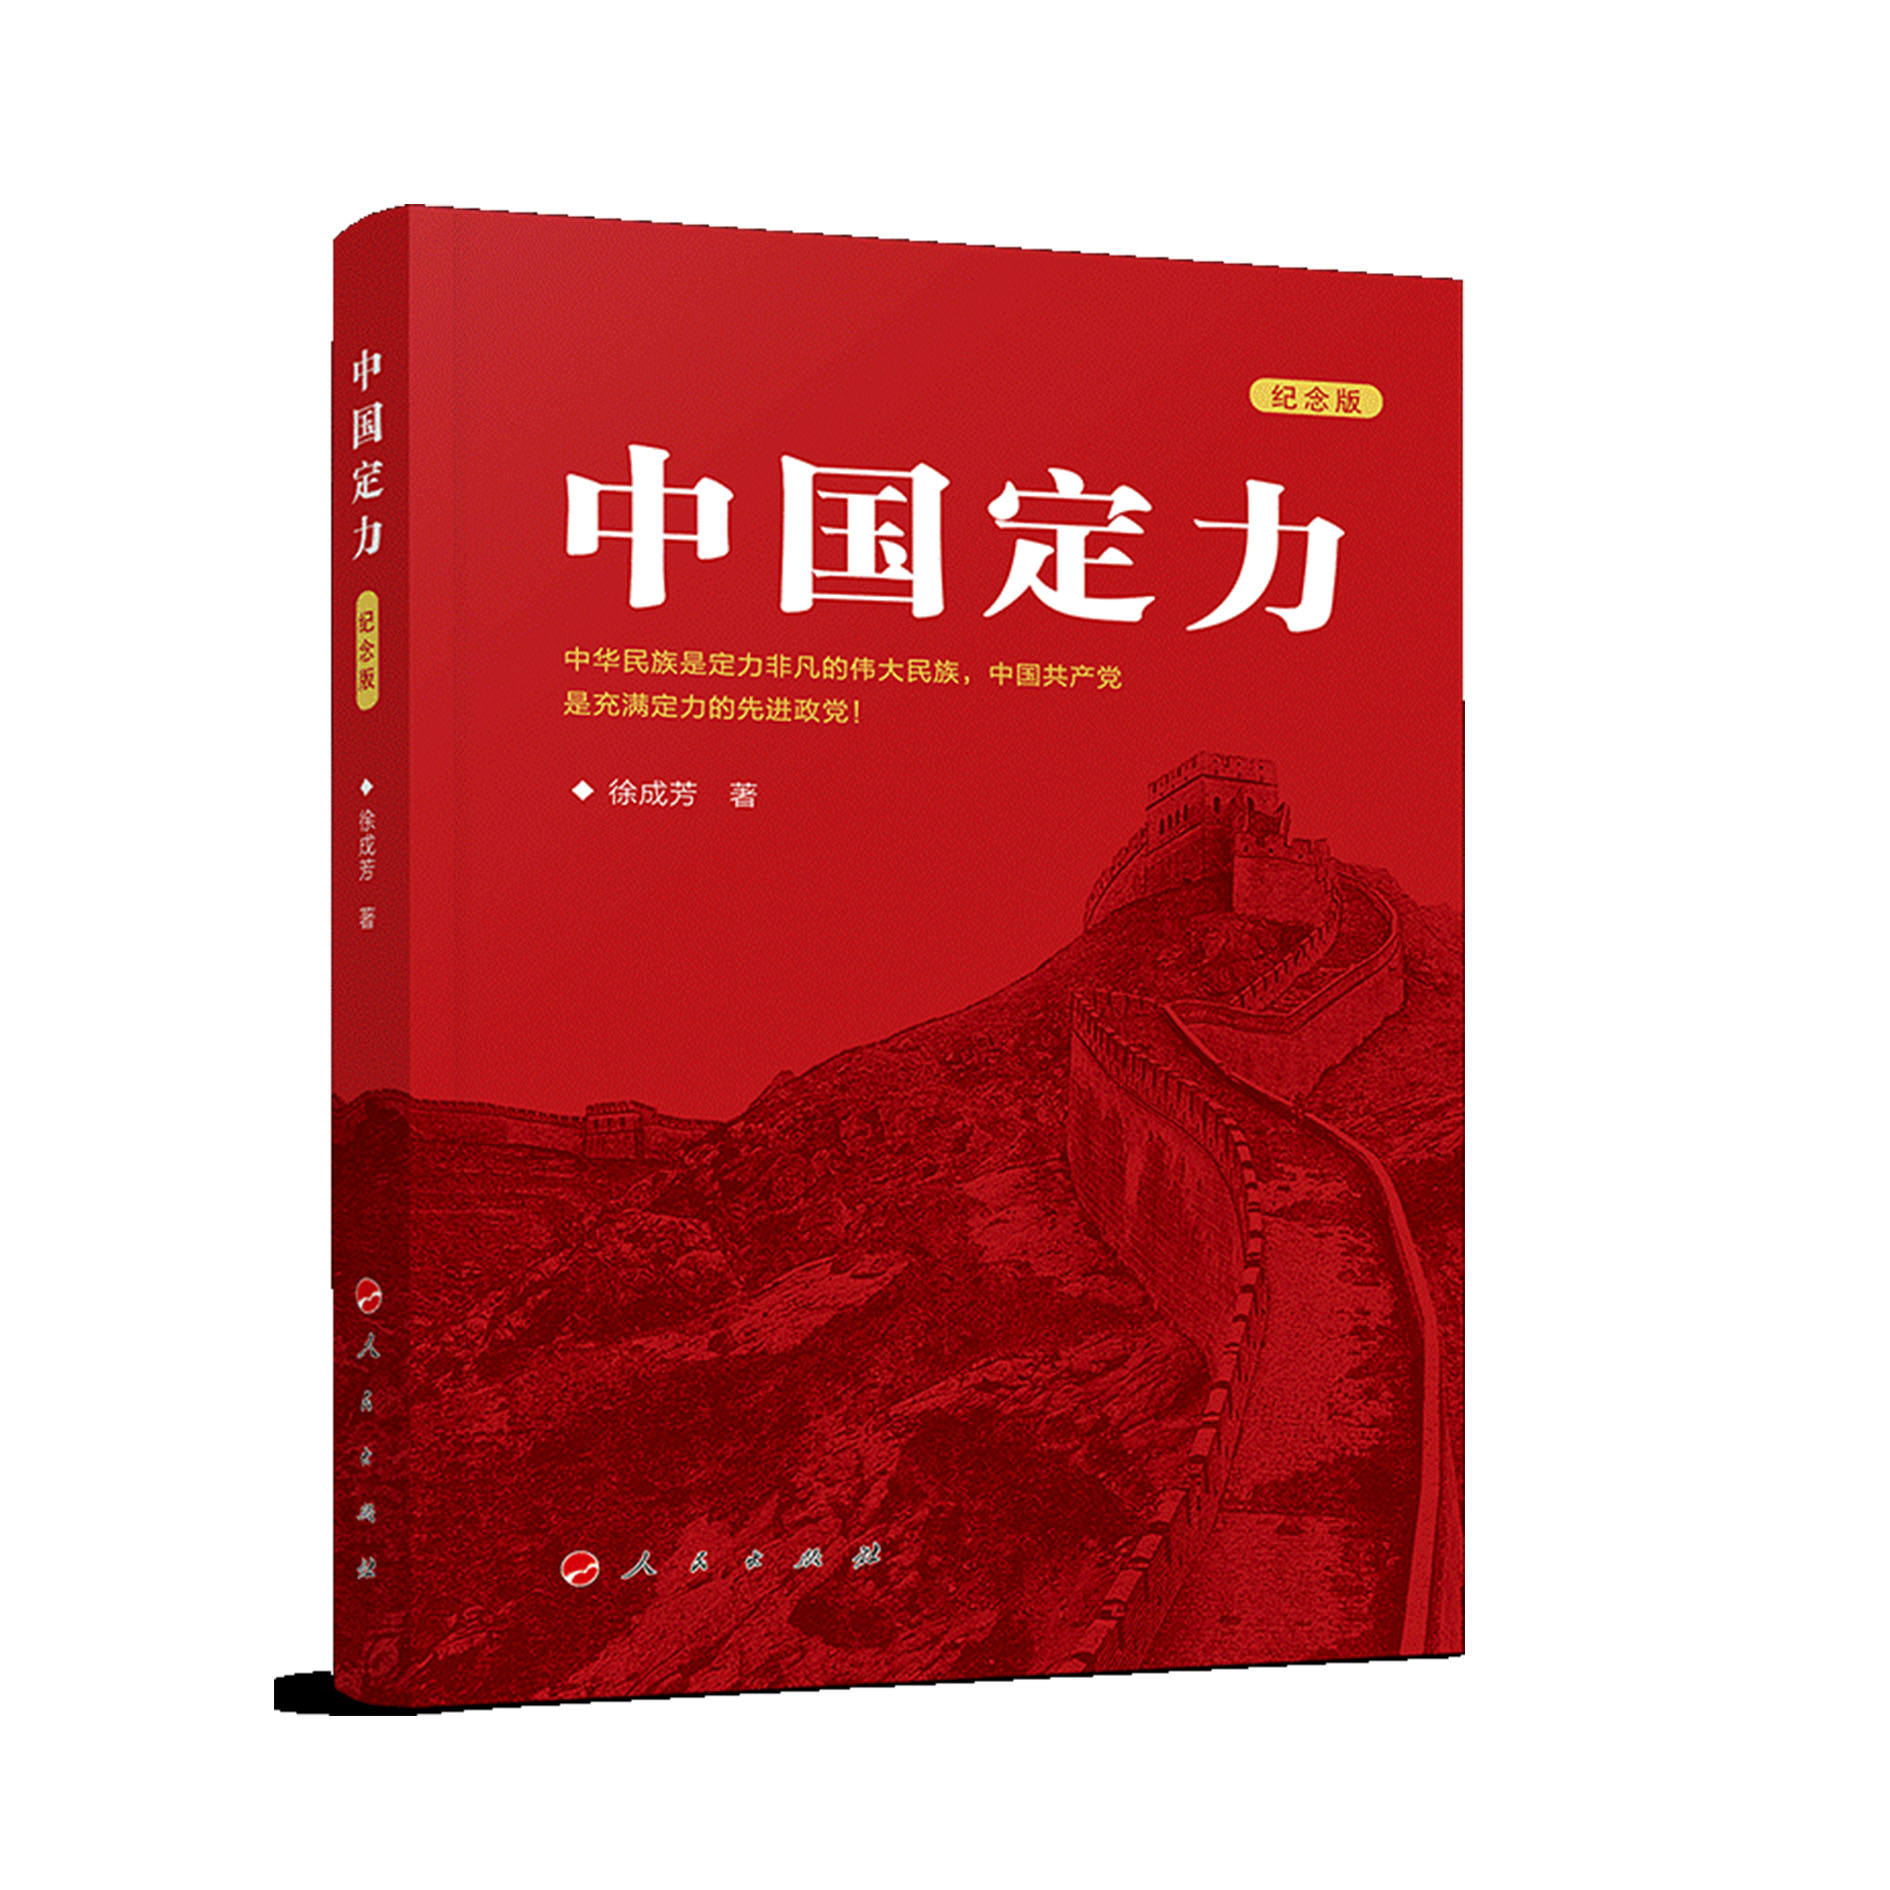 Chinese Determination and Confidence (Commemorative Edition)